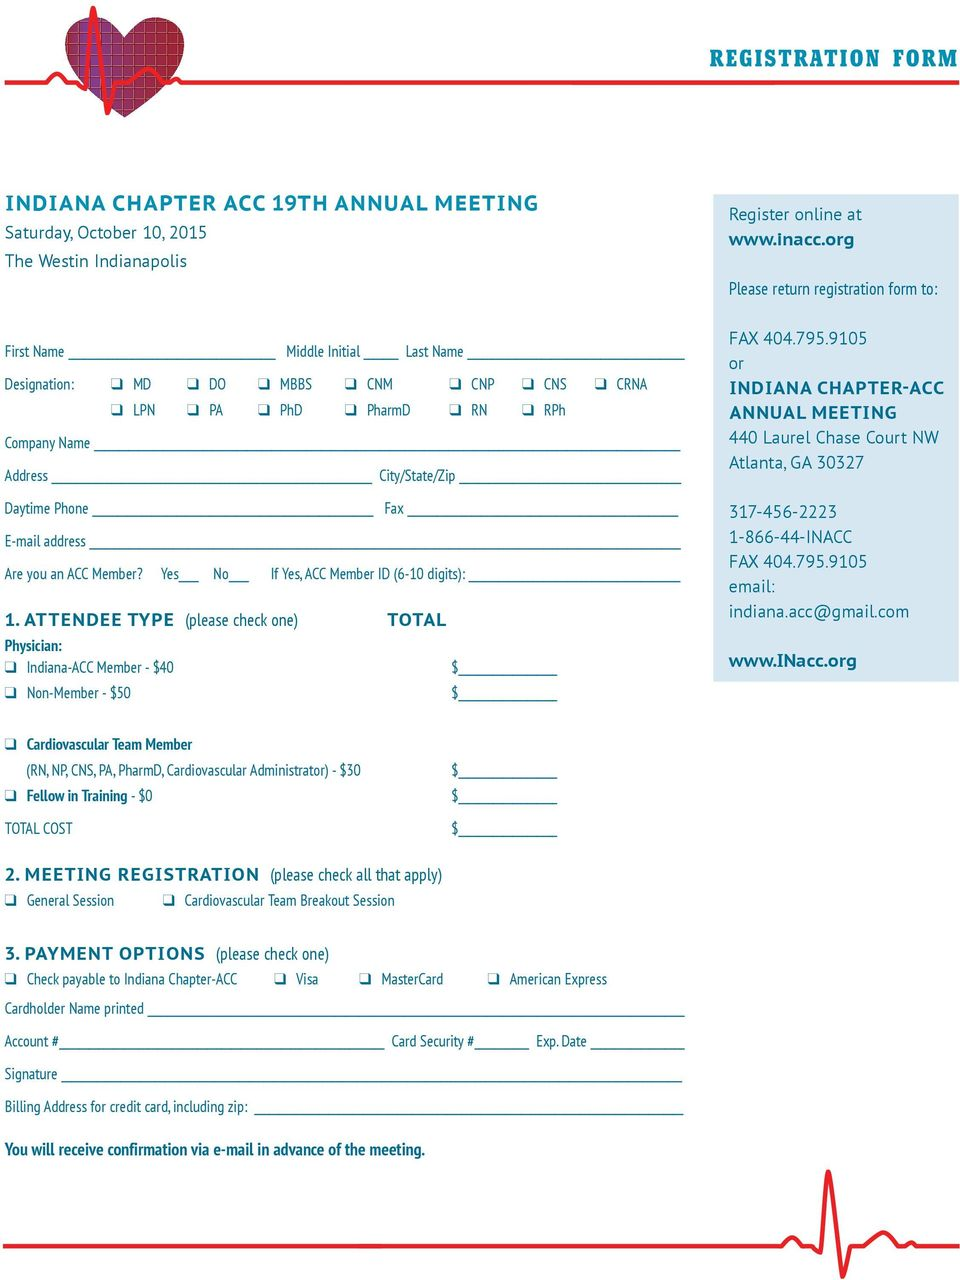 E-mail address Are you an ACC Member? Yes No If Yes, ACC Member ID (6-10 digits): 1. ATTENDEE TYPE (please check one) TOTAL Physician: Indiana-ACC Member - $40 Non-Member - $50 $ $ FAX 404.795.